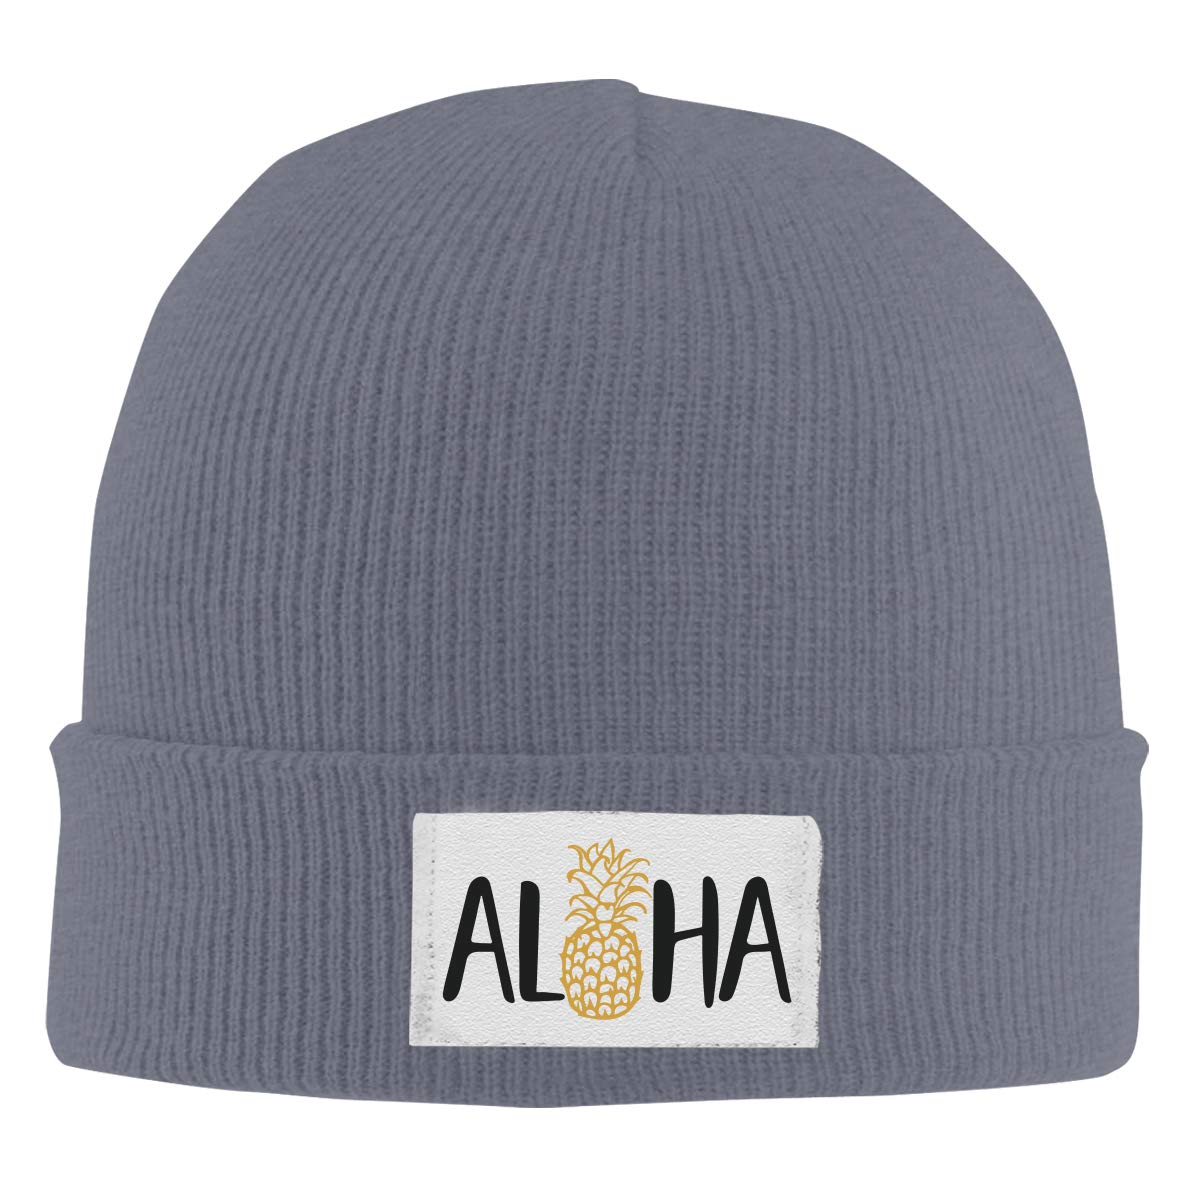 Dunpaiaa Skull Caps Aloha Beaches Pineapple Winter Warm Knit Hats Stretchy Cuff Beanie Hat Black